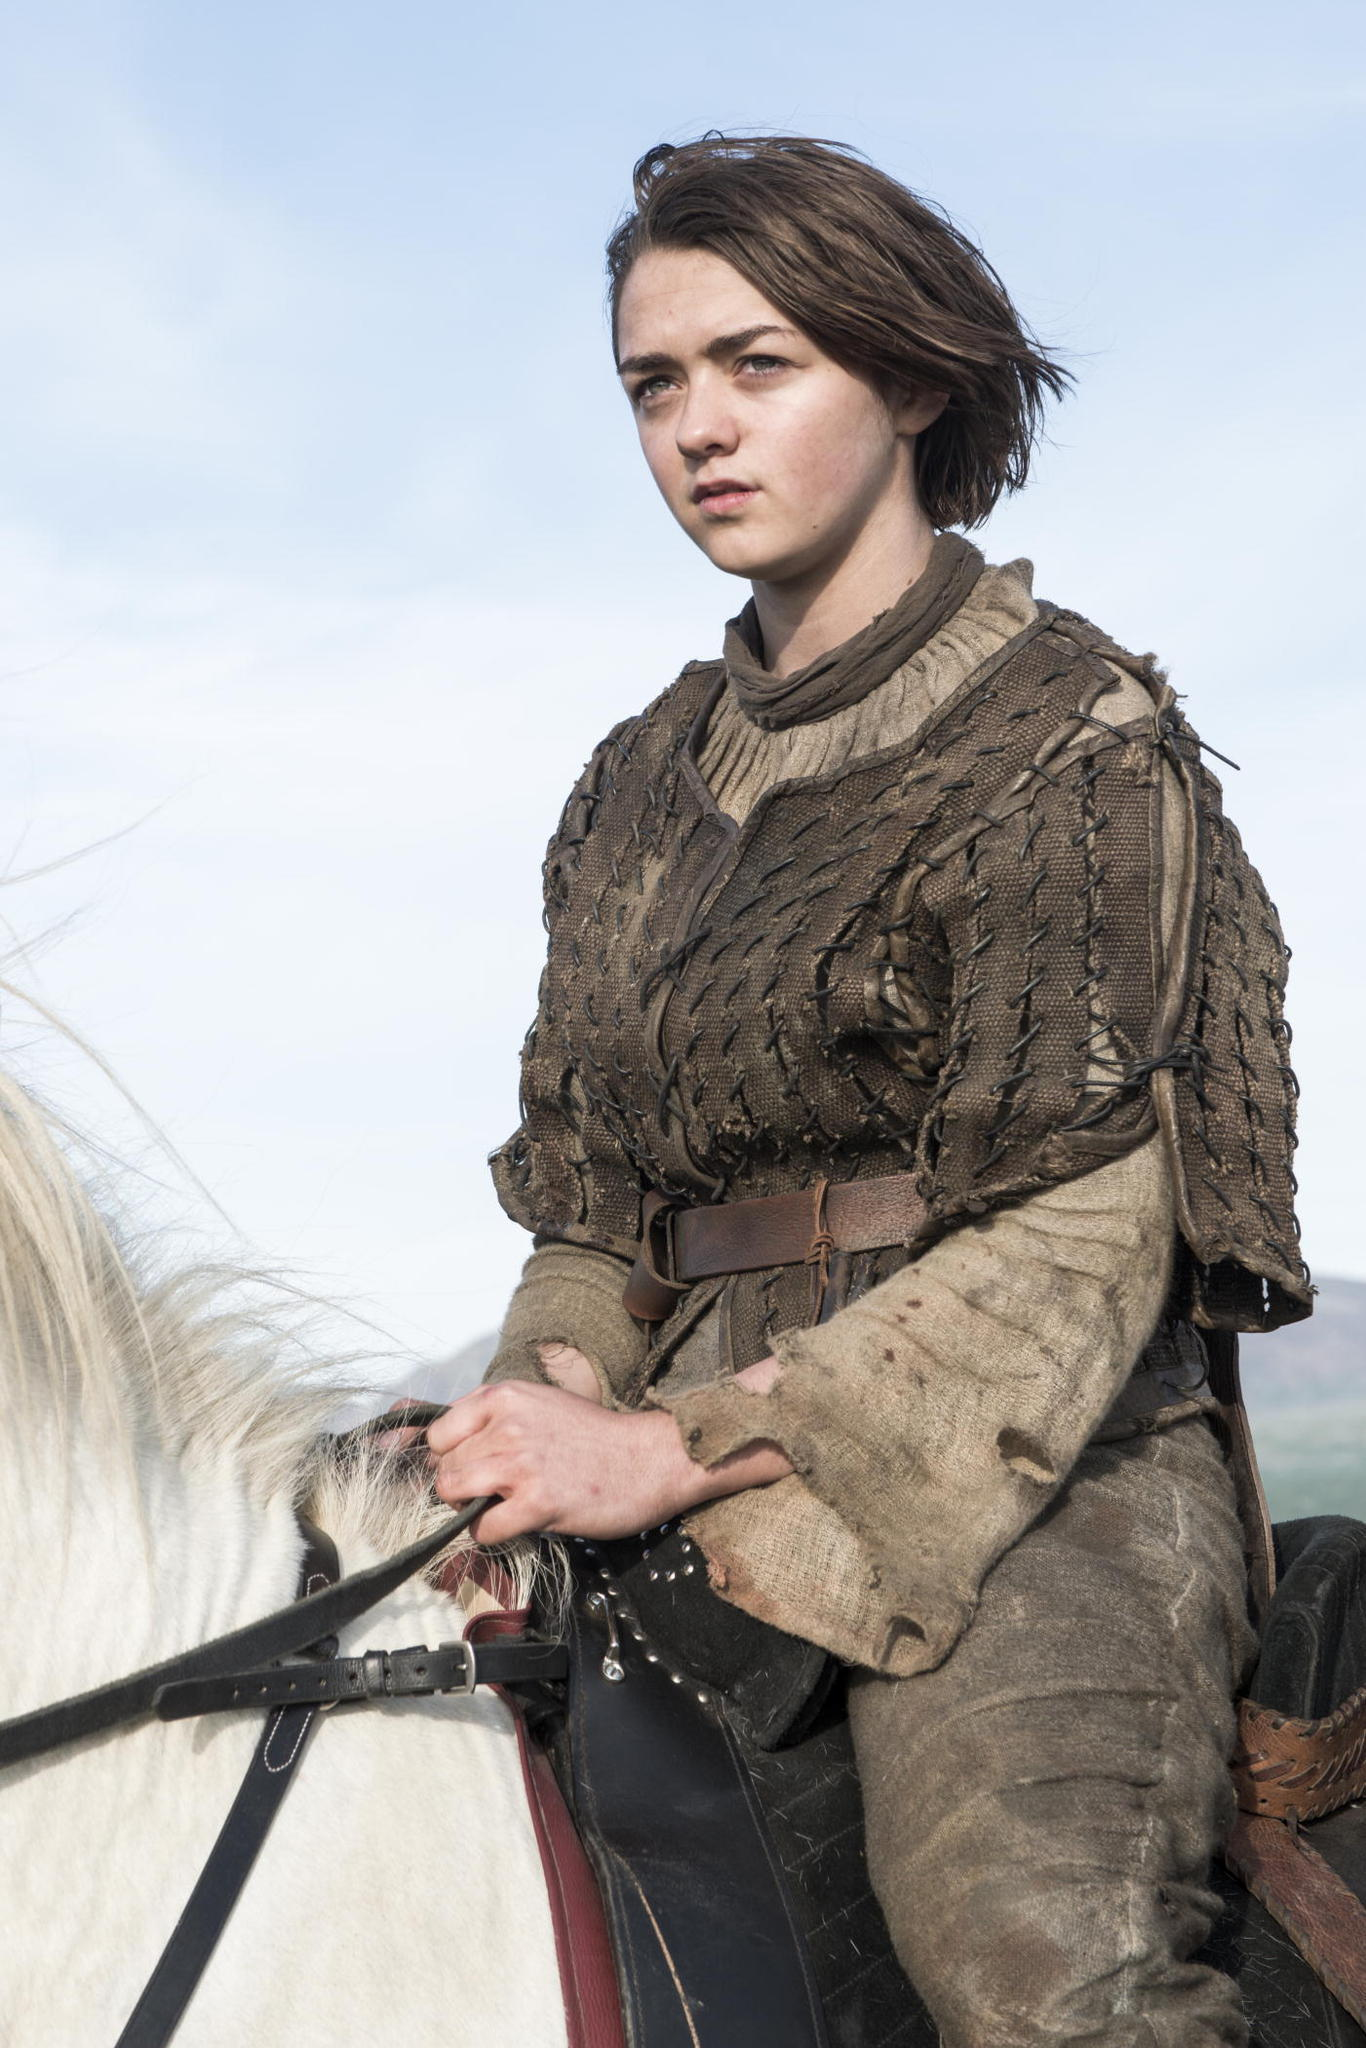 Game of Thrones Season 4 Finale Preview The Children - Arya on horseback www.scifiempire.net